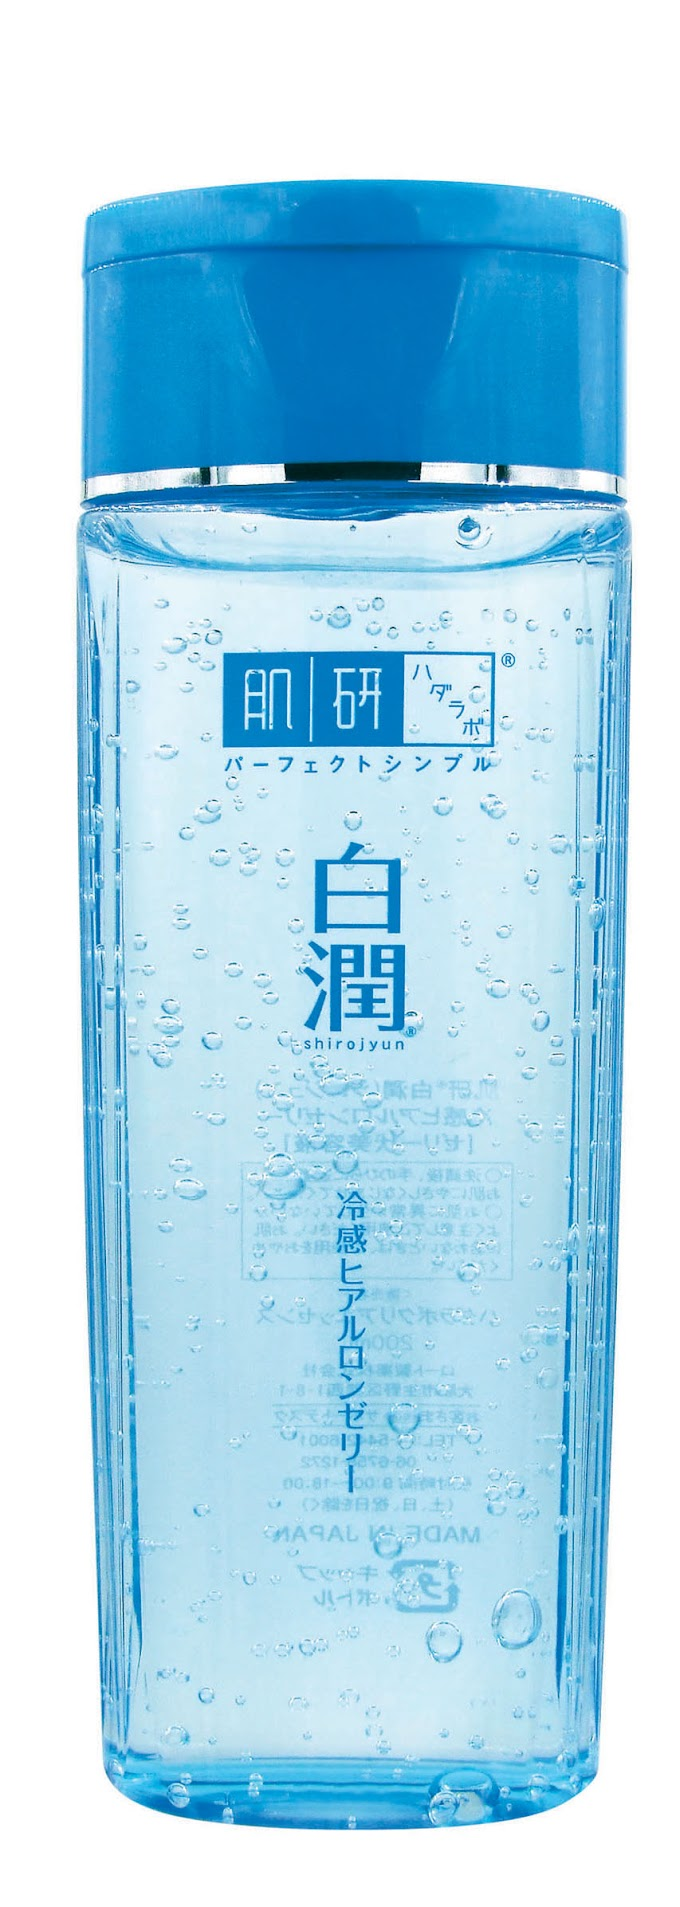 HADA LABO 5-IN-1 WHITENING COOLING GEL LOTION